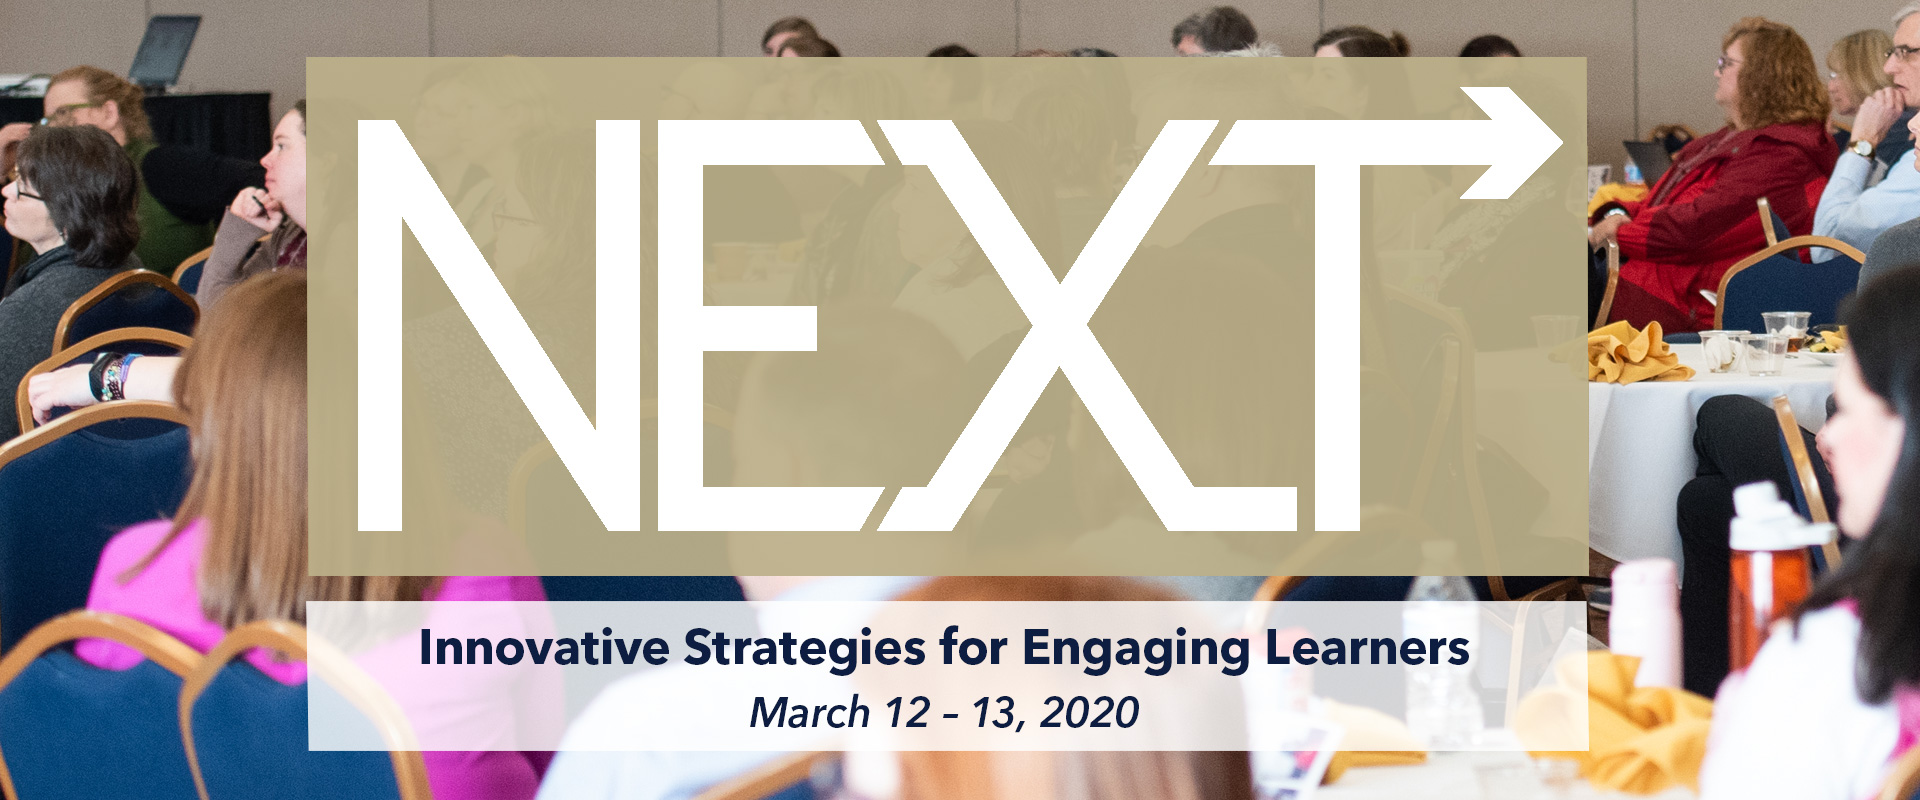 NEXT 2020 - Innovative Strategies for Engaging Learners